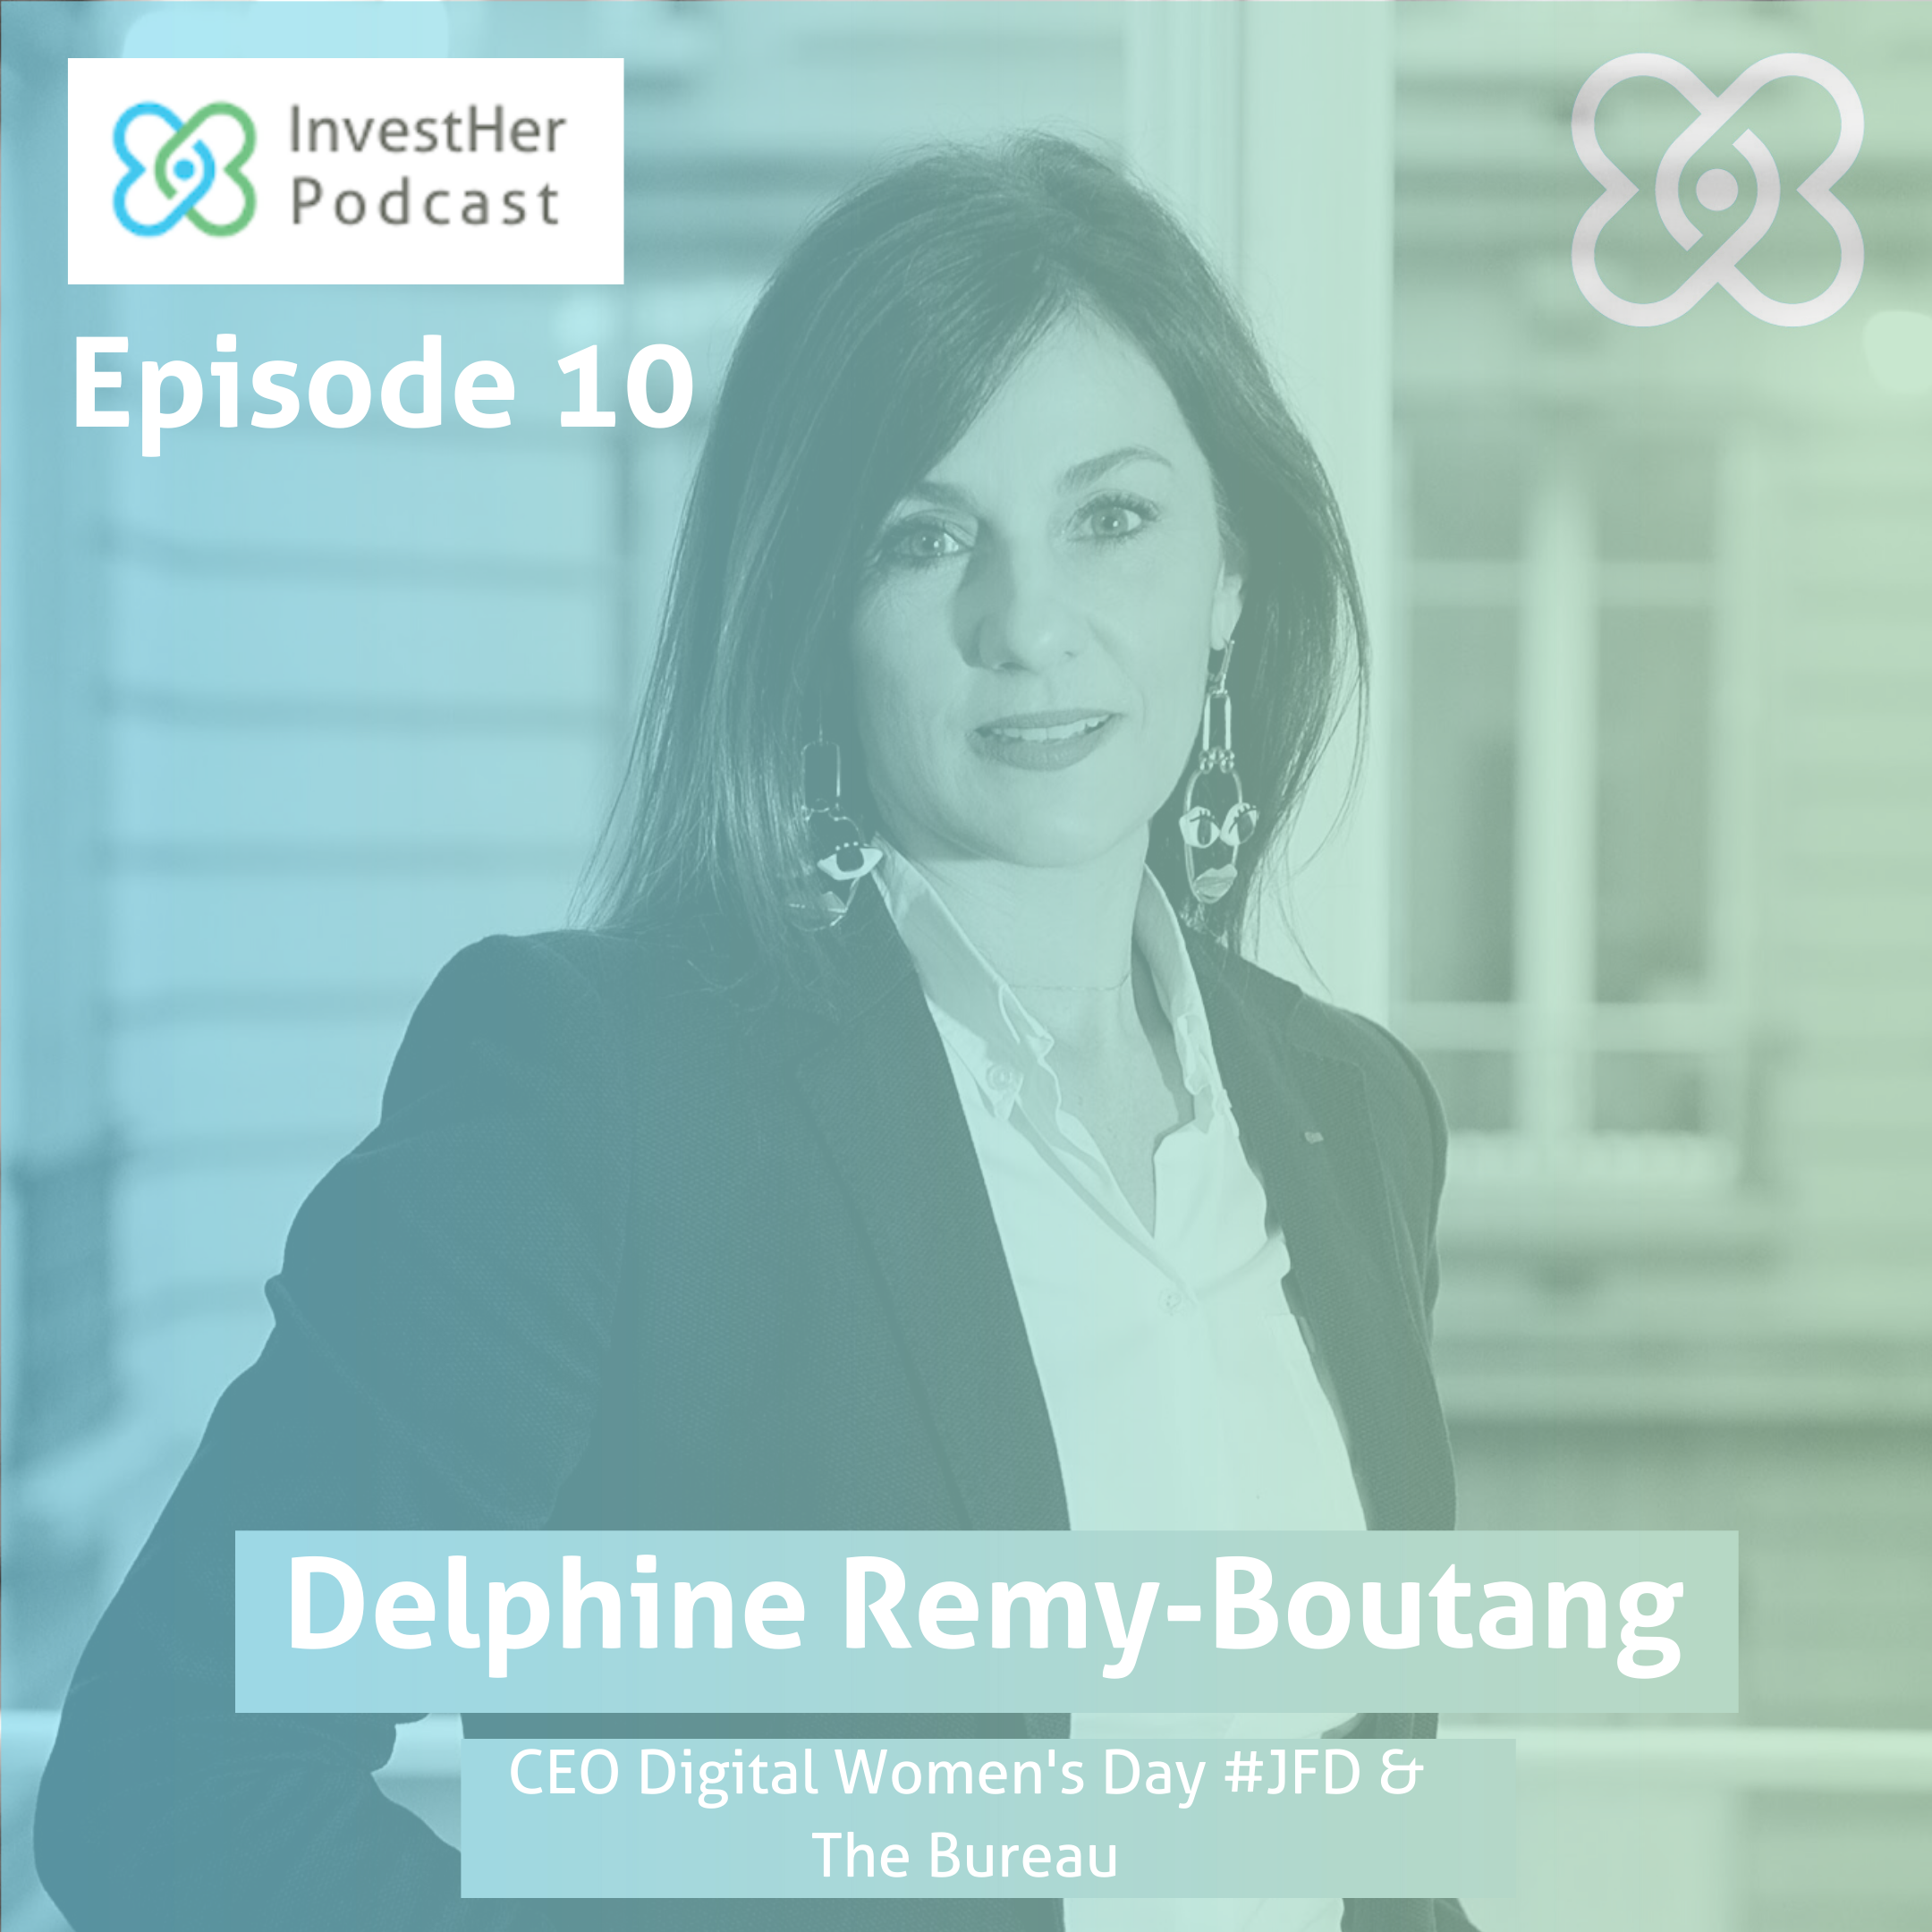 When Women Come Together, The Power of it Is Enormous - Delphine Remy-Boutang